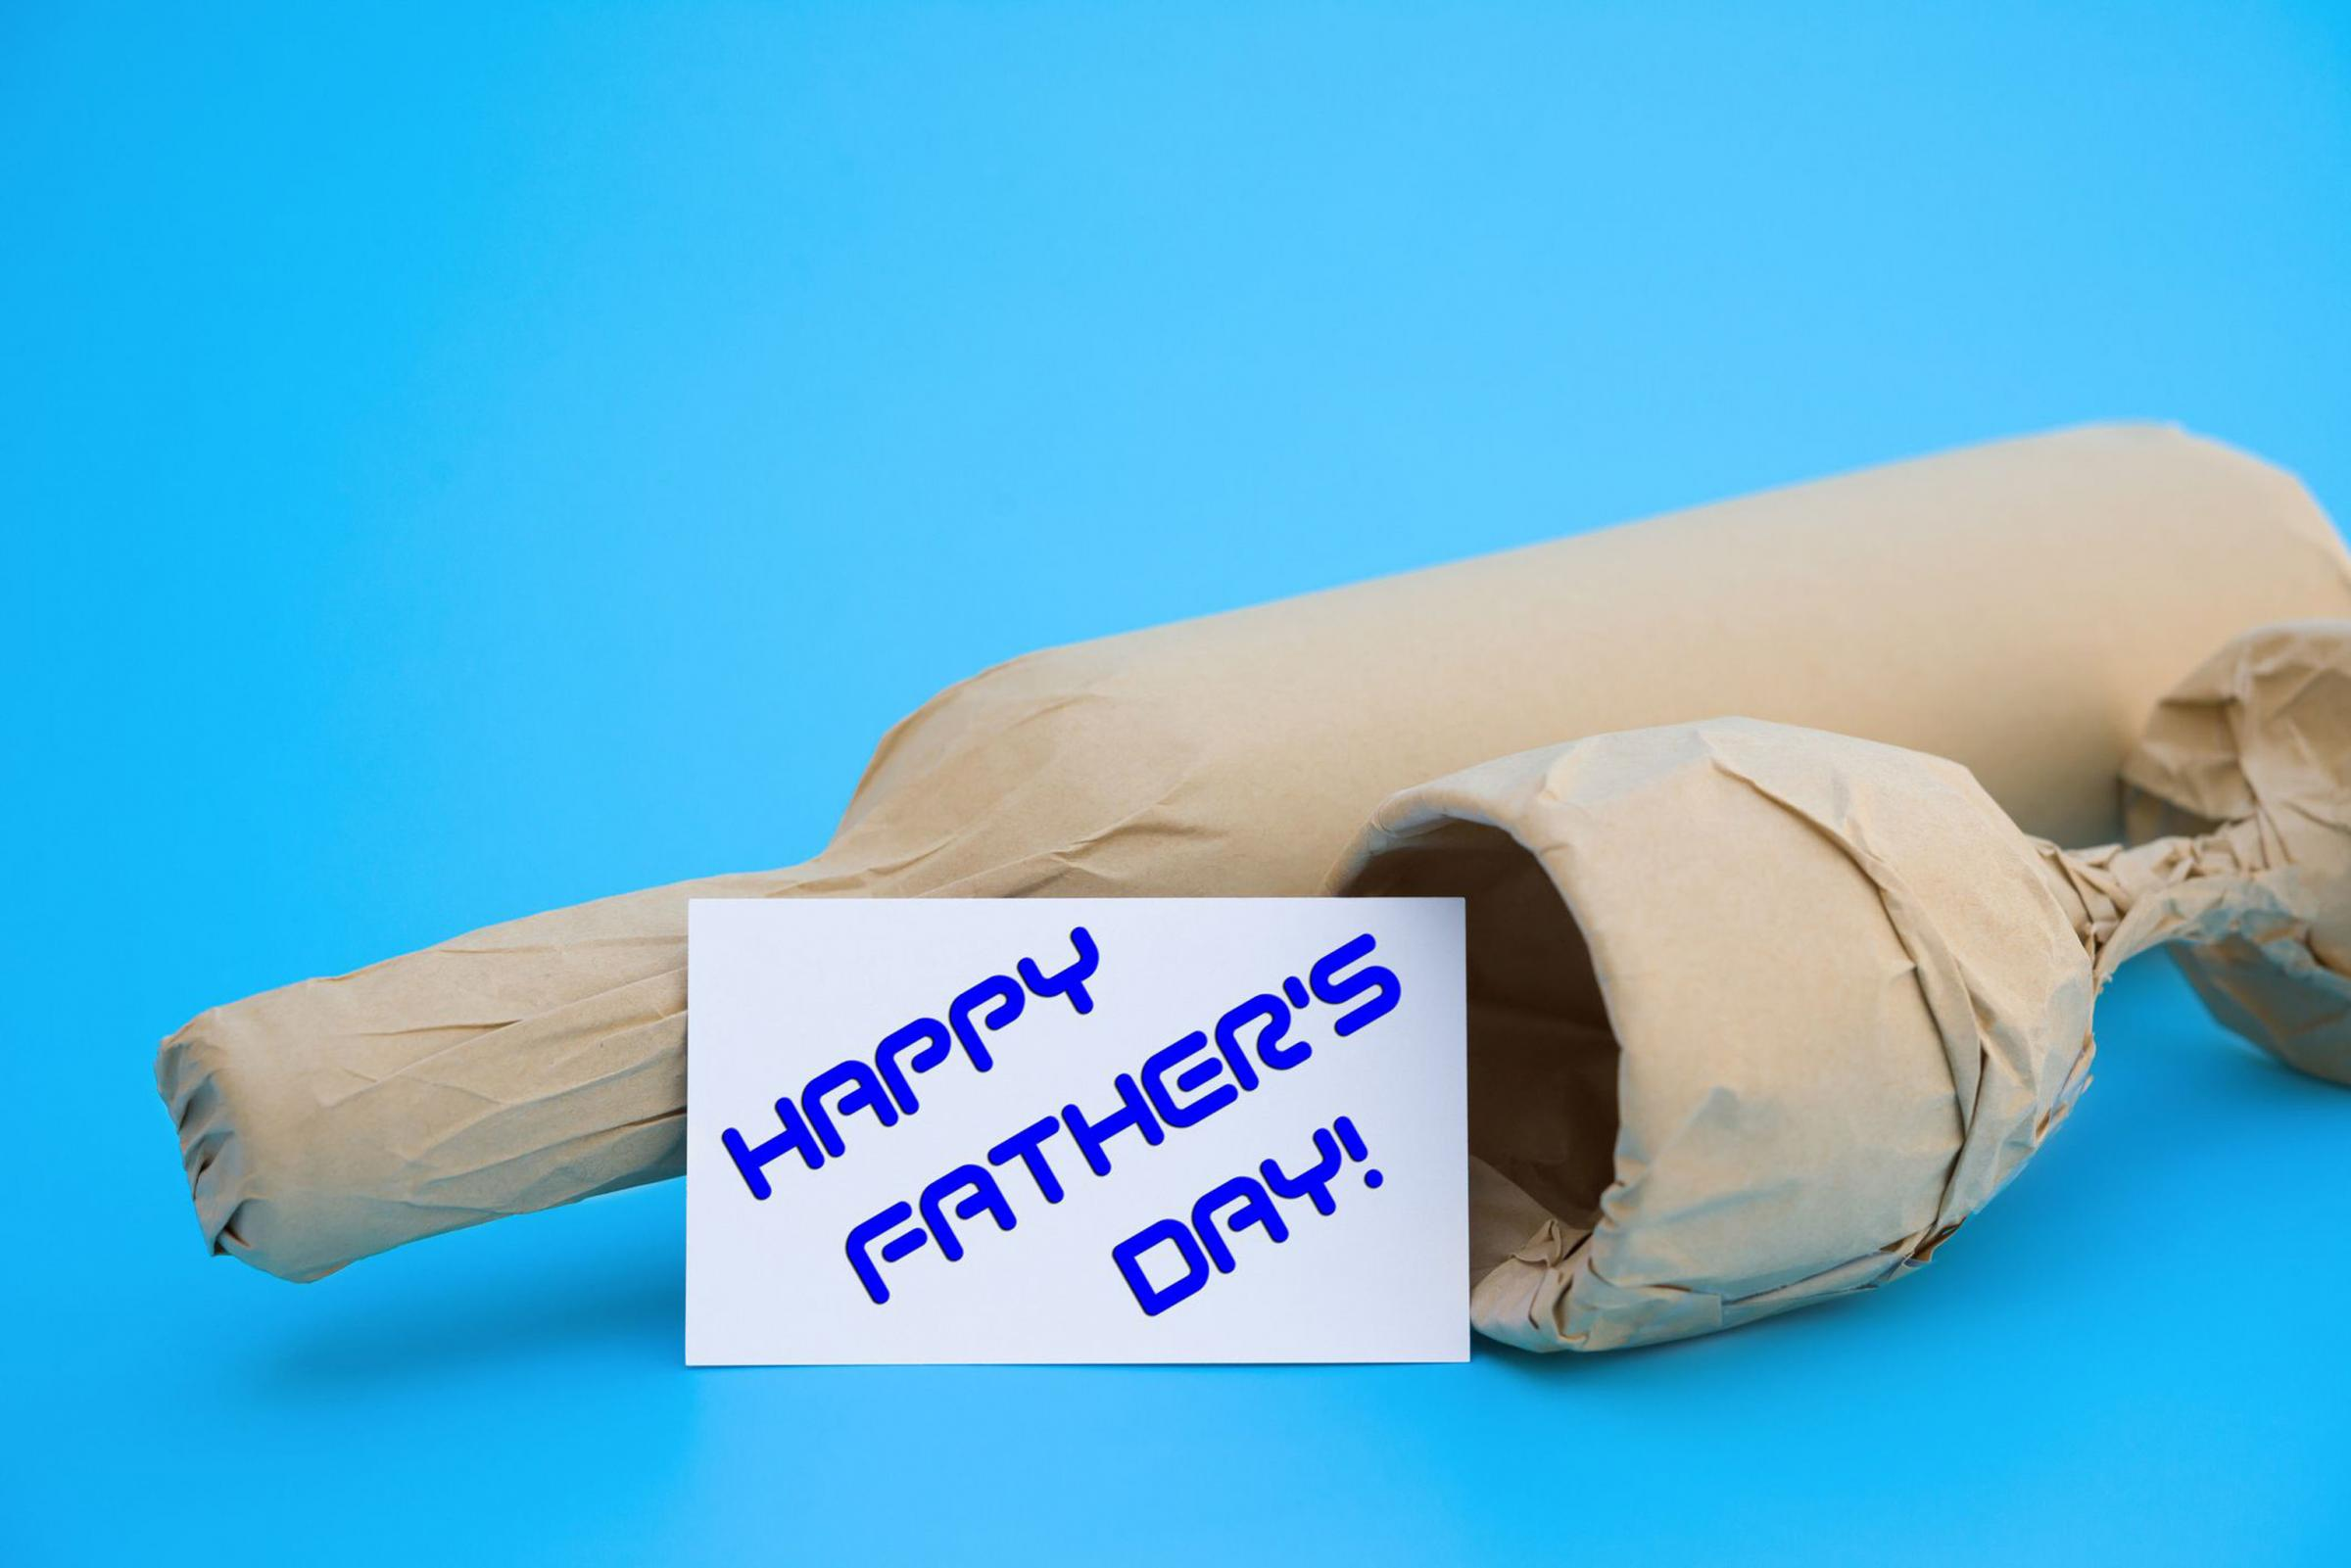 Father's Day drinks: 8 wonderful wines and superb spirits to keep him in good cheer